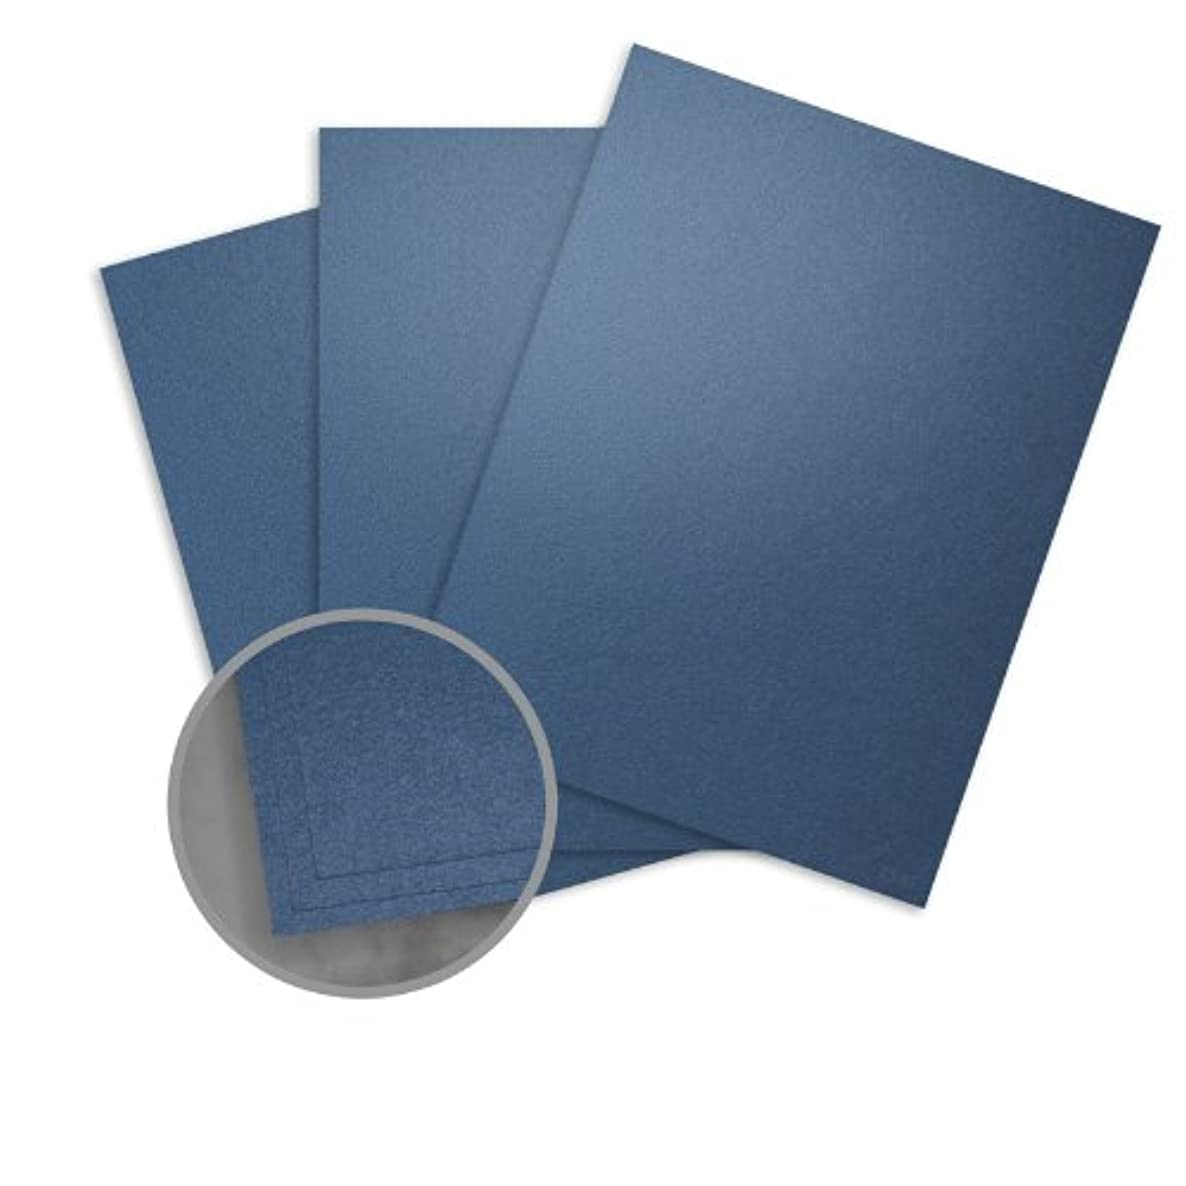 Stardream Sapphire Card Stock - 12 x 12 in 105 lb Cover Metallic C/2S 100 per Package